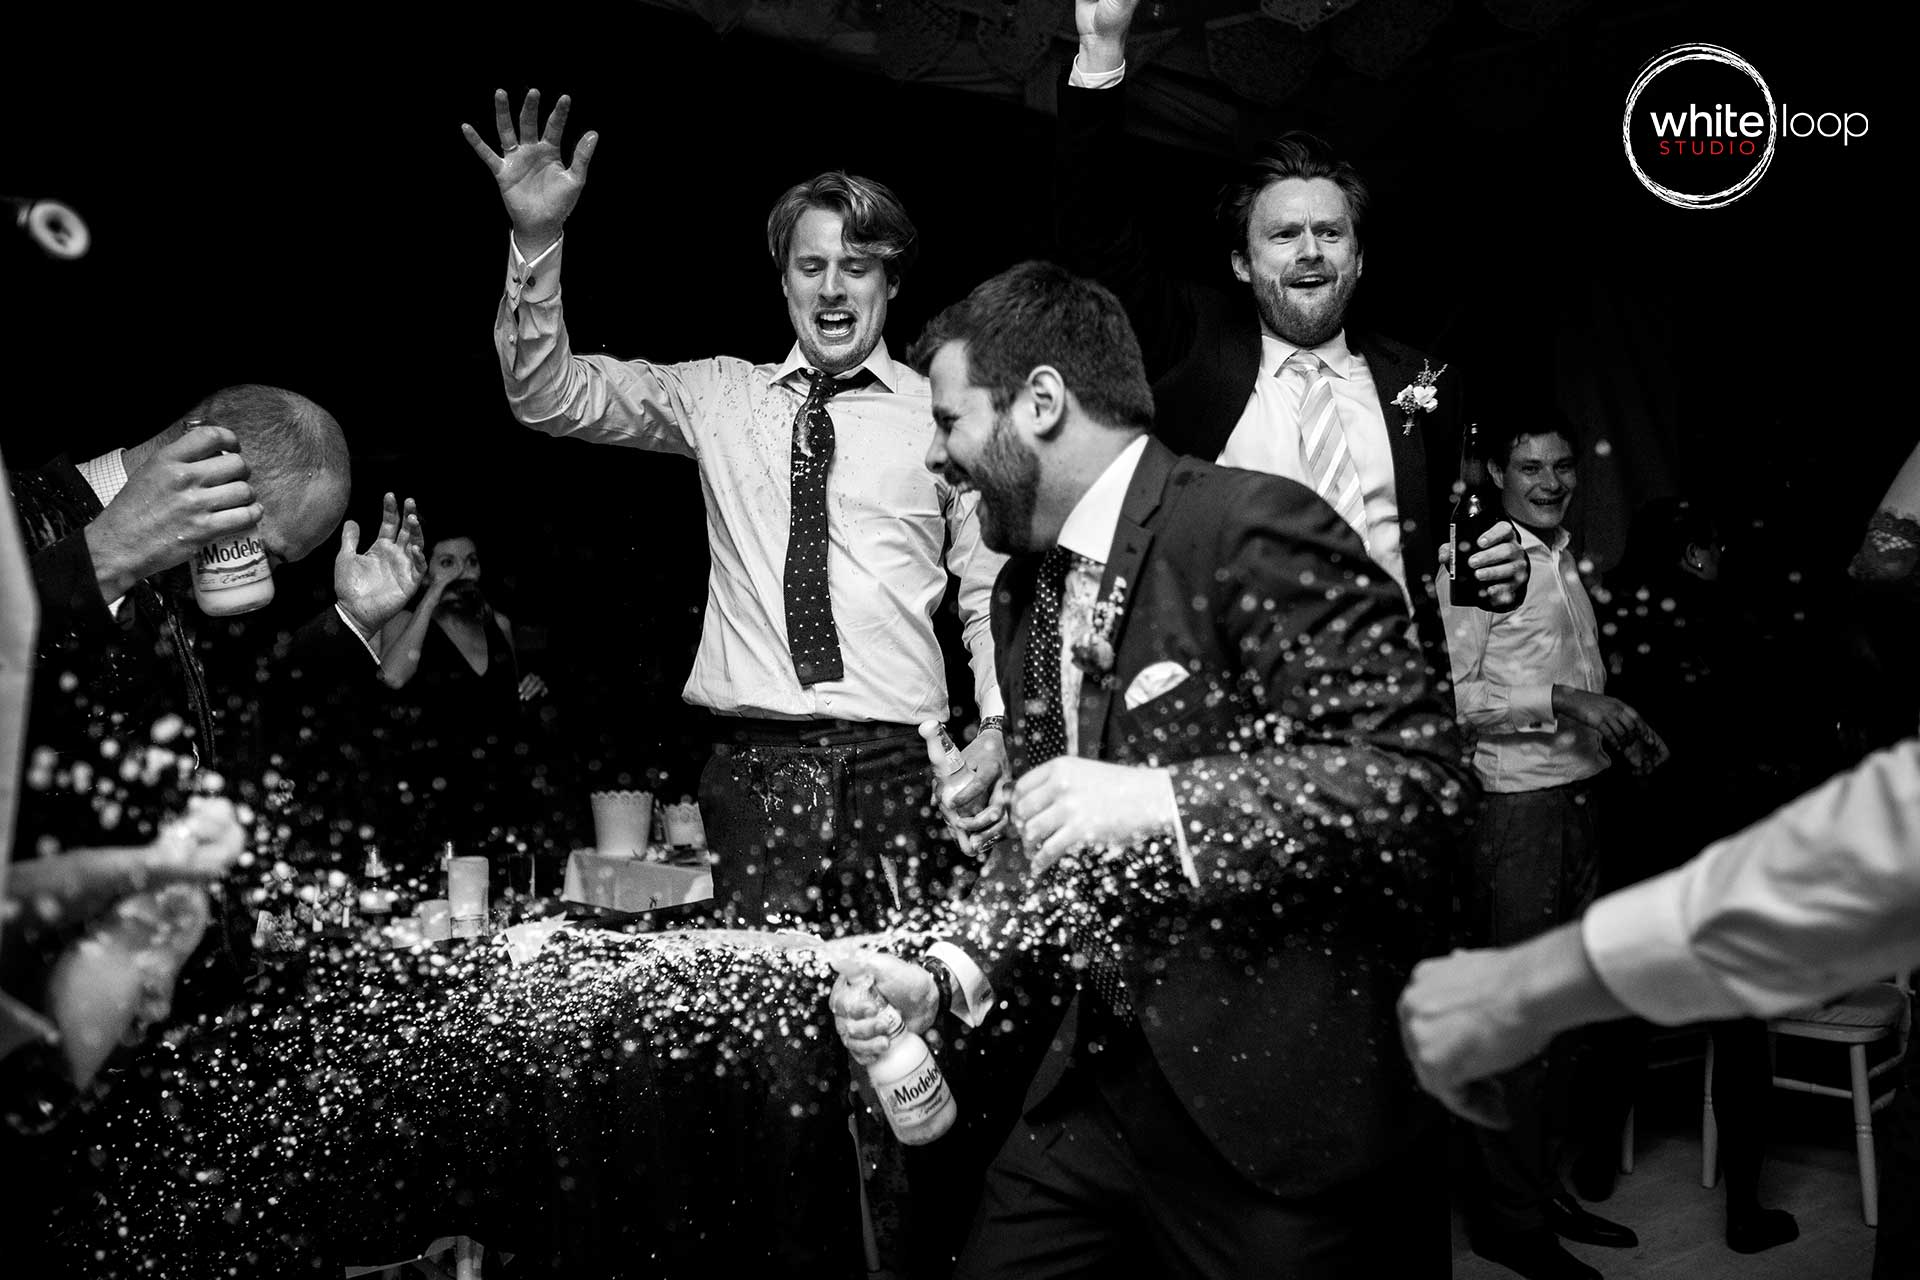 The groom celebrating and having fun in black and white with his german friends, uncovering a beer.